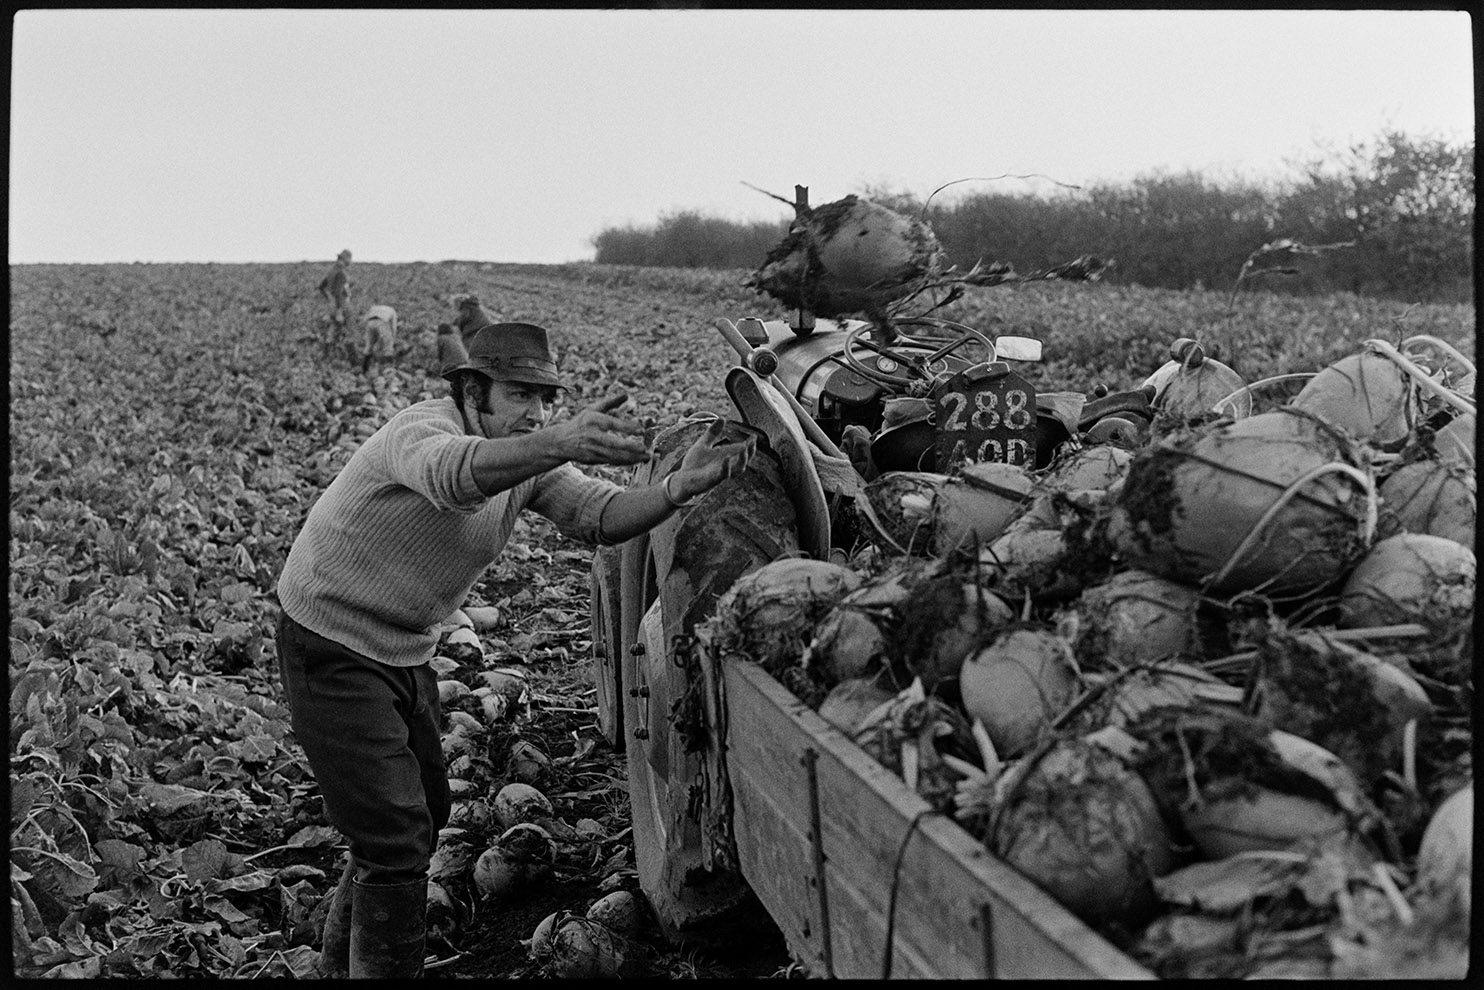 Man cutting beet and loading on trailer, Roborough, October 1975. Documentary photograph by James Ravilious for the Beaford Archive © Beaford Arts